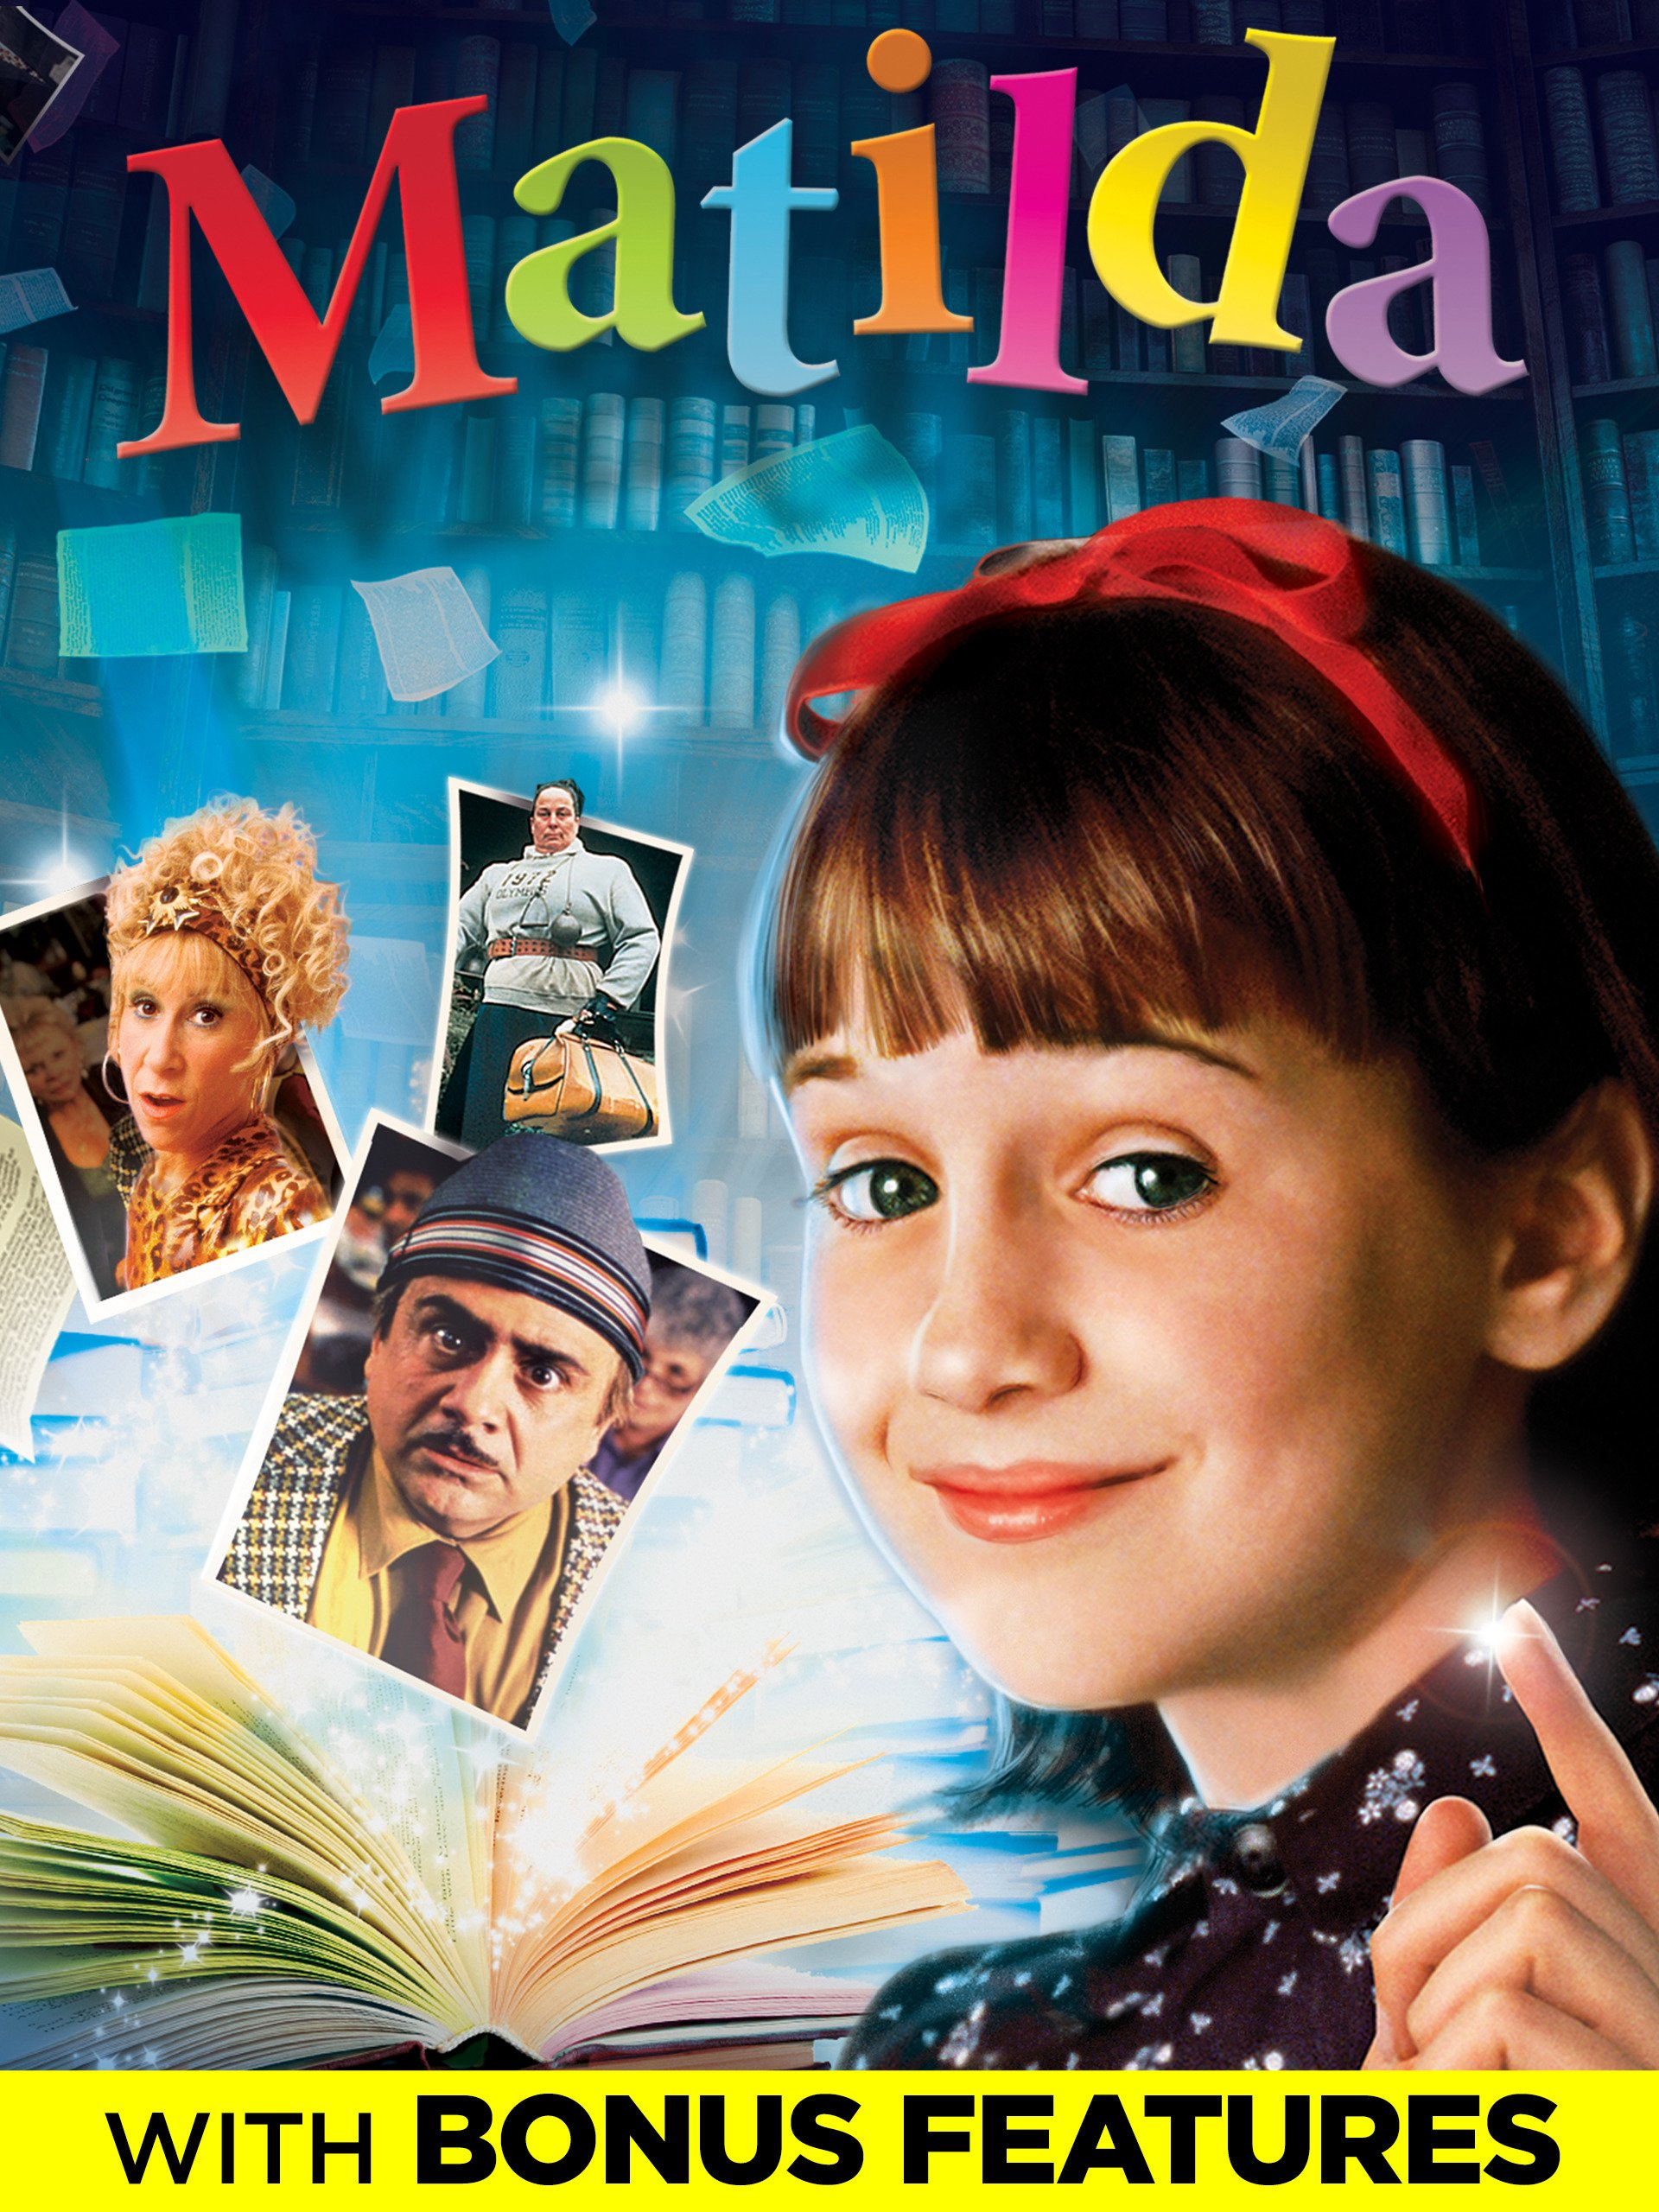 matilda full movie in english part 1